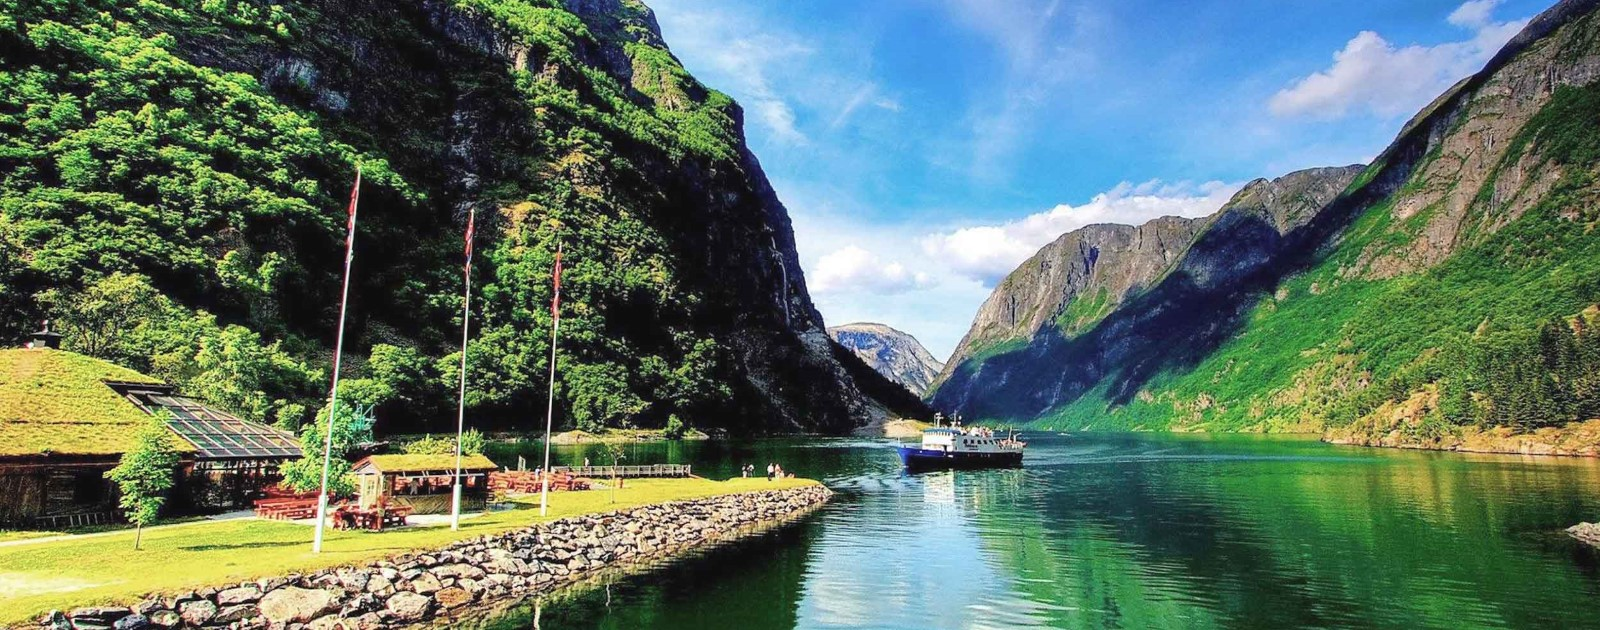 KnarvikMila – The Great Fjord Run Race Reviews | Isdalsto, Norway